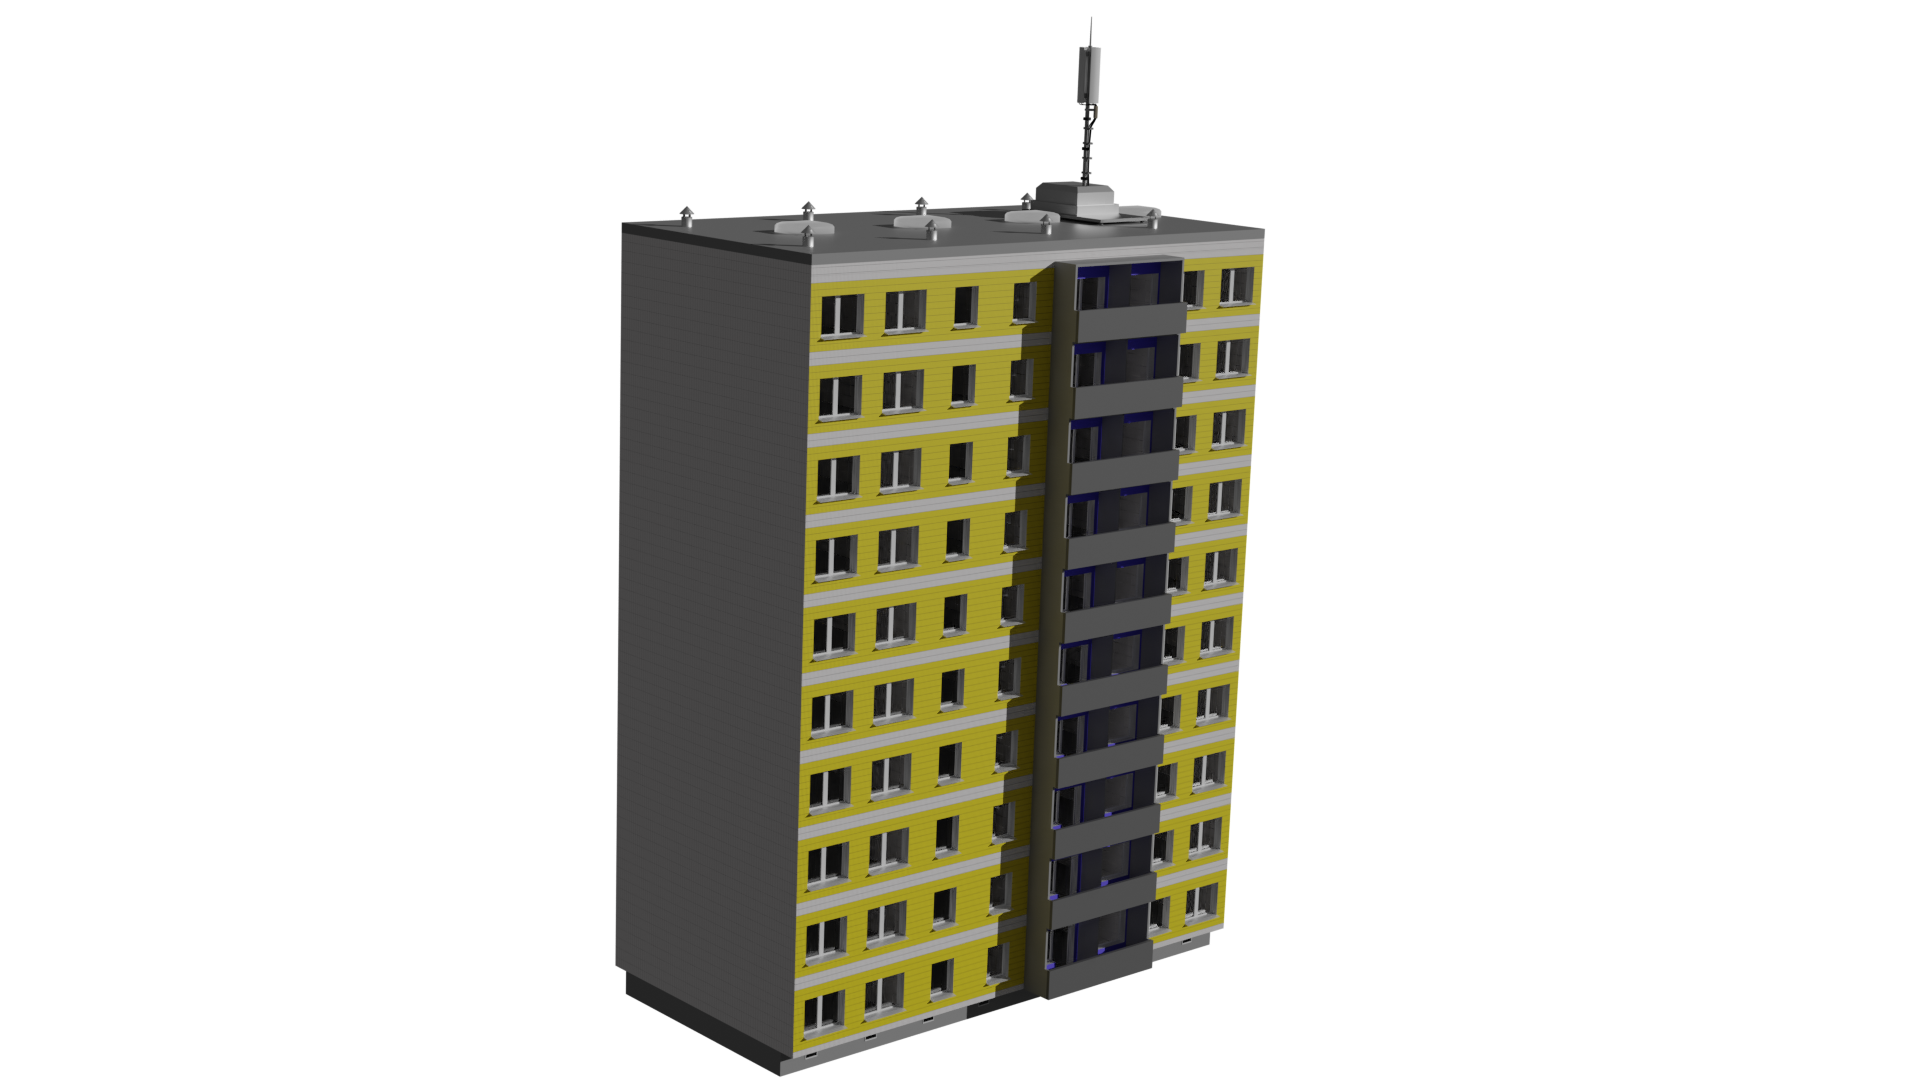 Modular Instustrialized Apartment Block (Low Poly) preview image 1